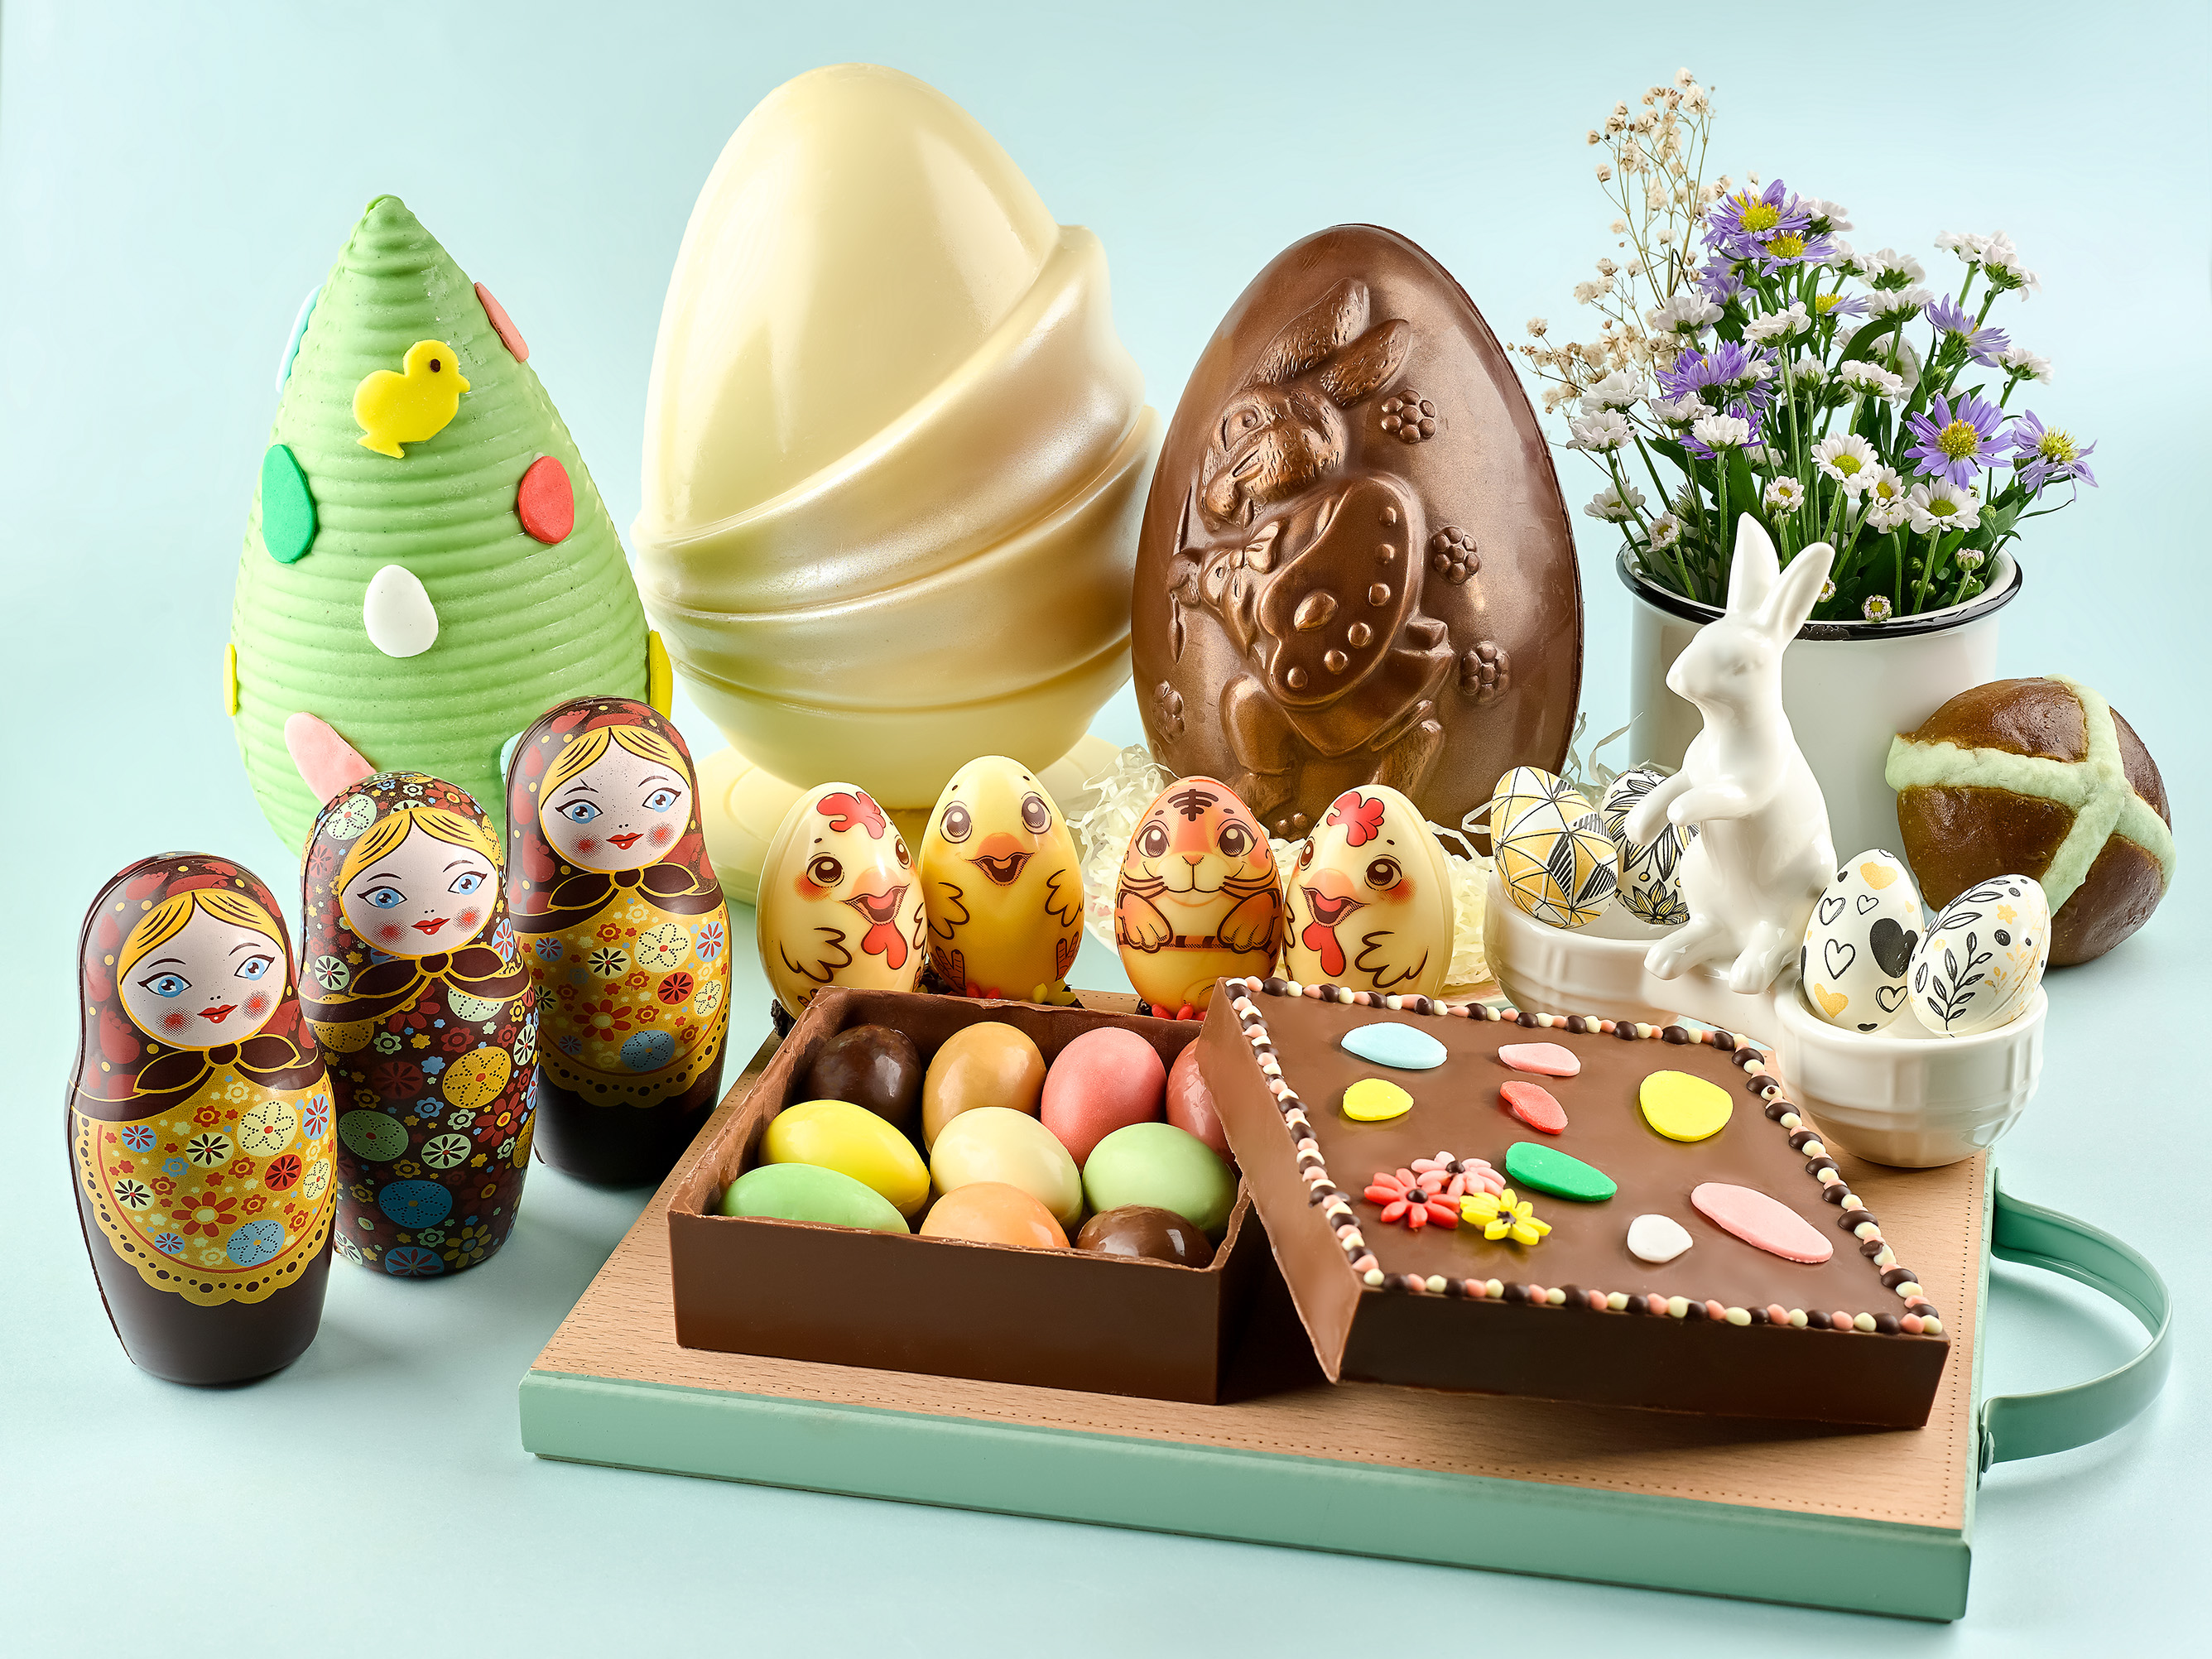 Easter weekend: 5 staycations to book in Singapore